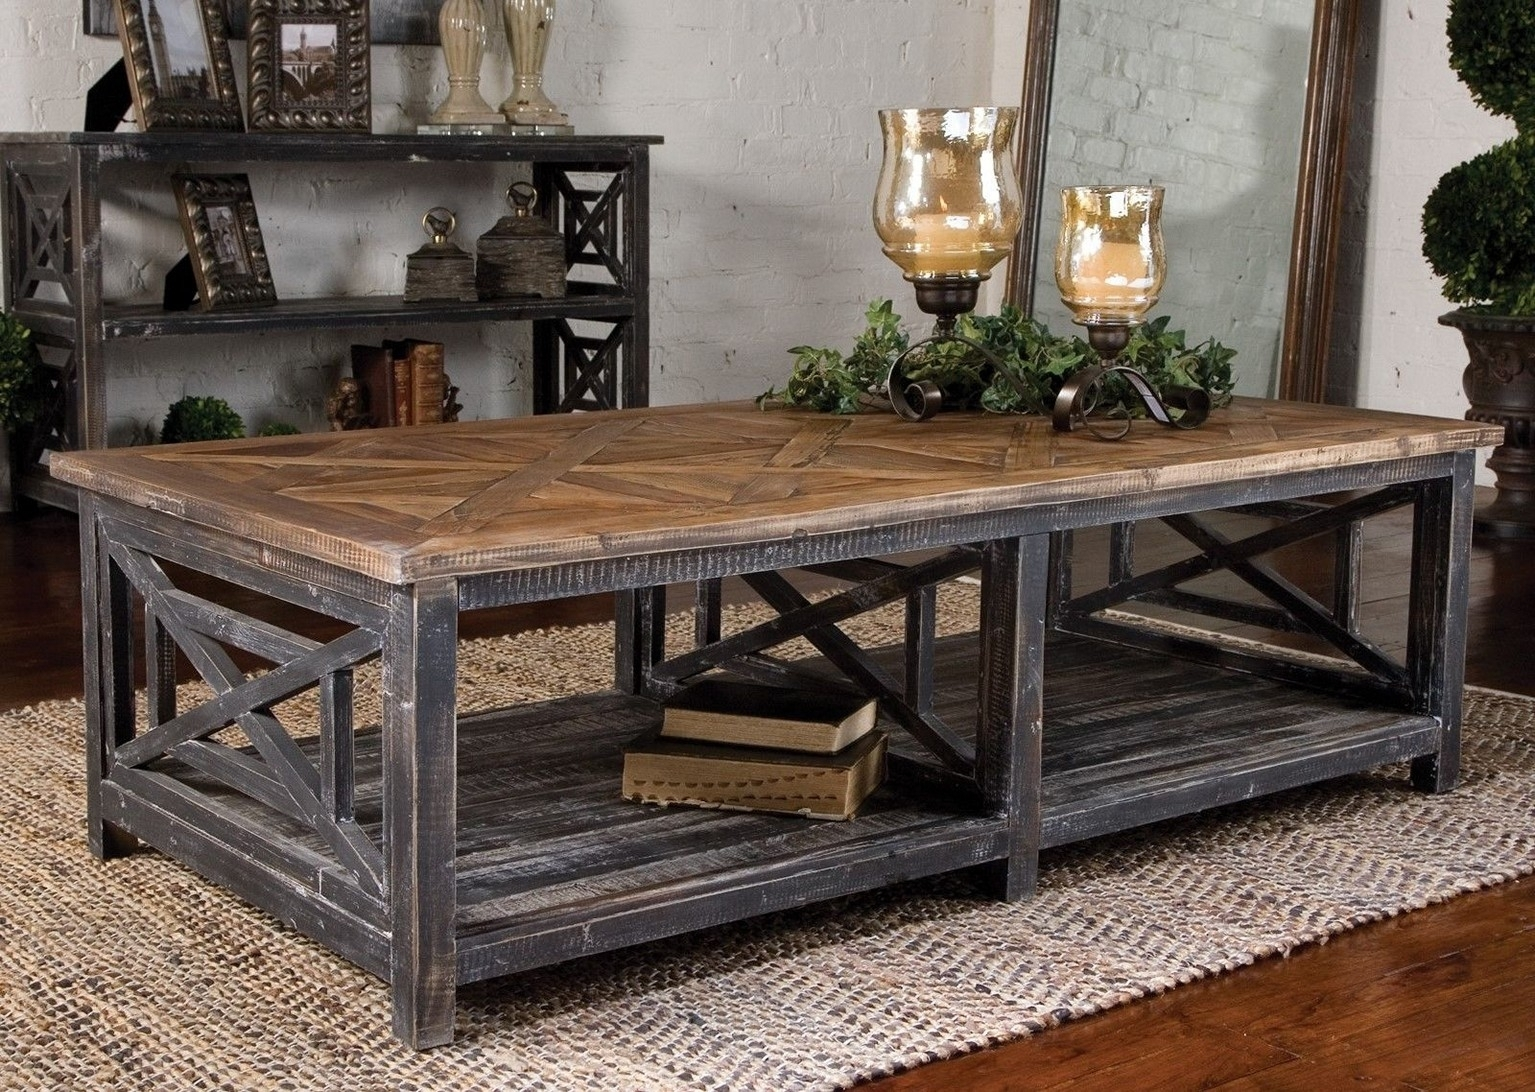 Home Design Ideas Awesome Stunning Rustic Coffee Table Ideas With in Modern Rustic Coffee Tables (Image 6 of 30)